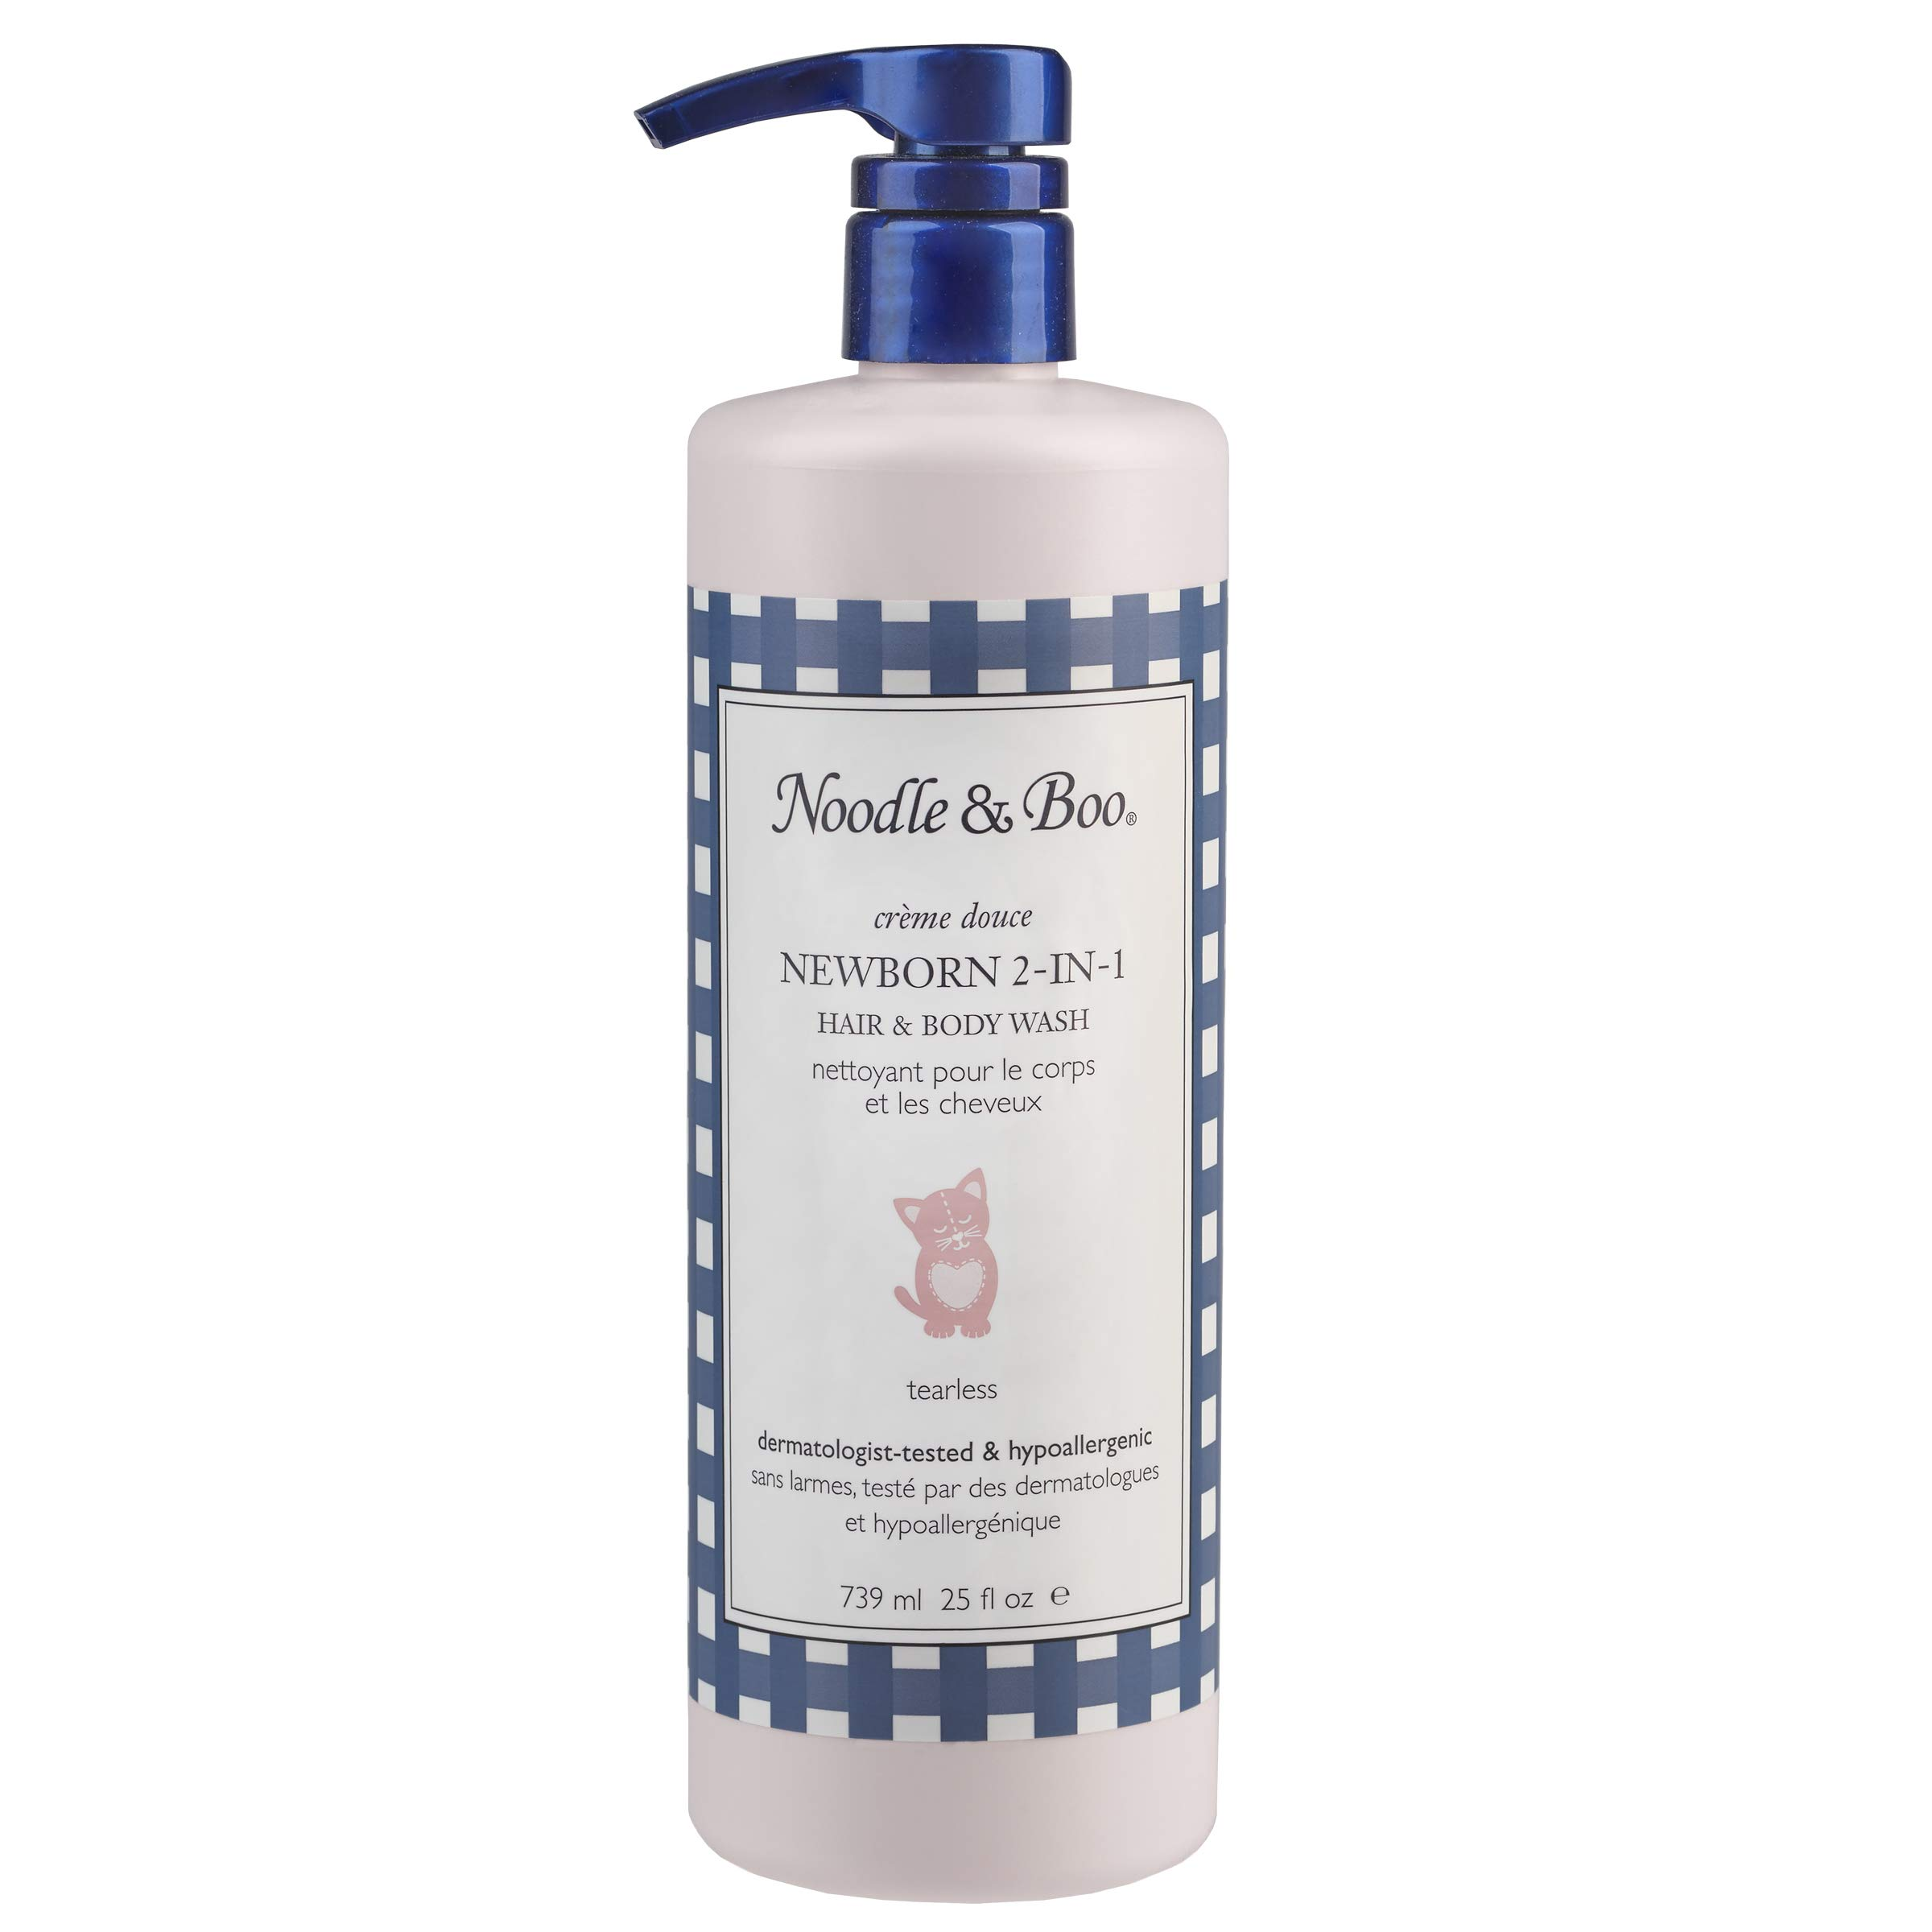 Noodle & Boo 2-in-1 Newborn Hair & Baby Body Wash for Baby, 25 Fl Oz by Noodle & Boo